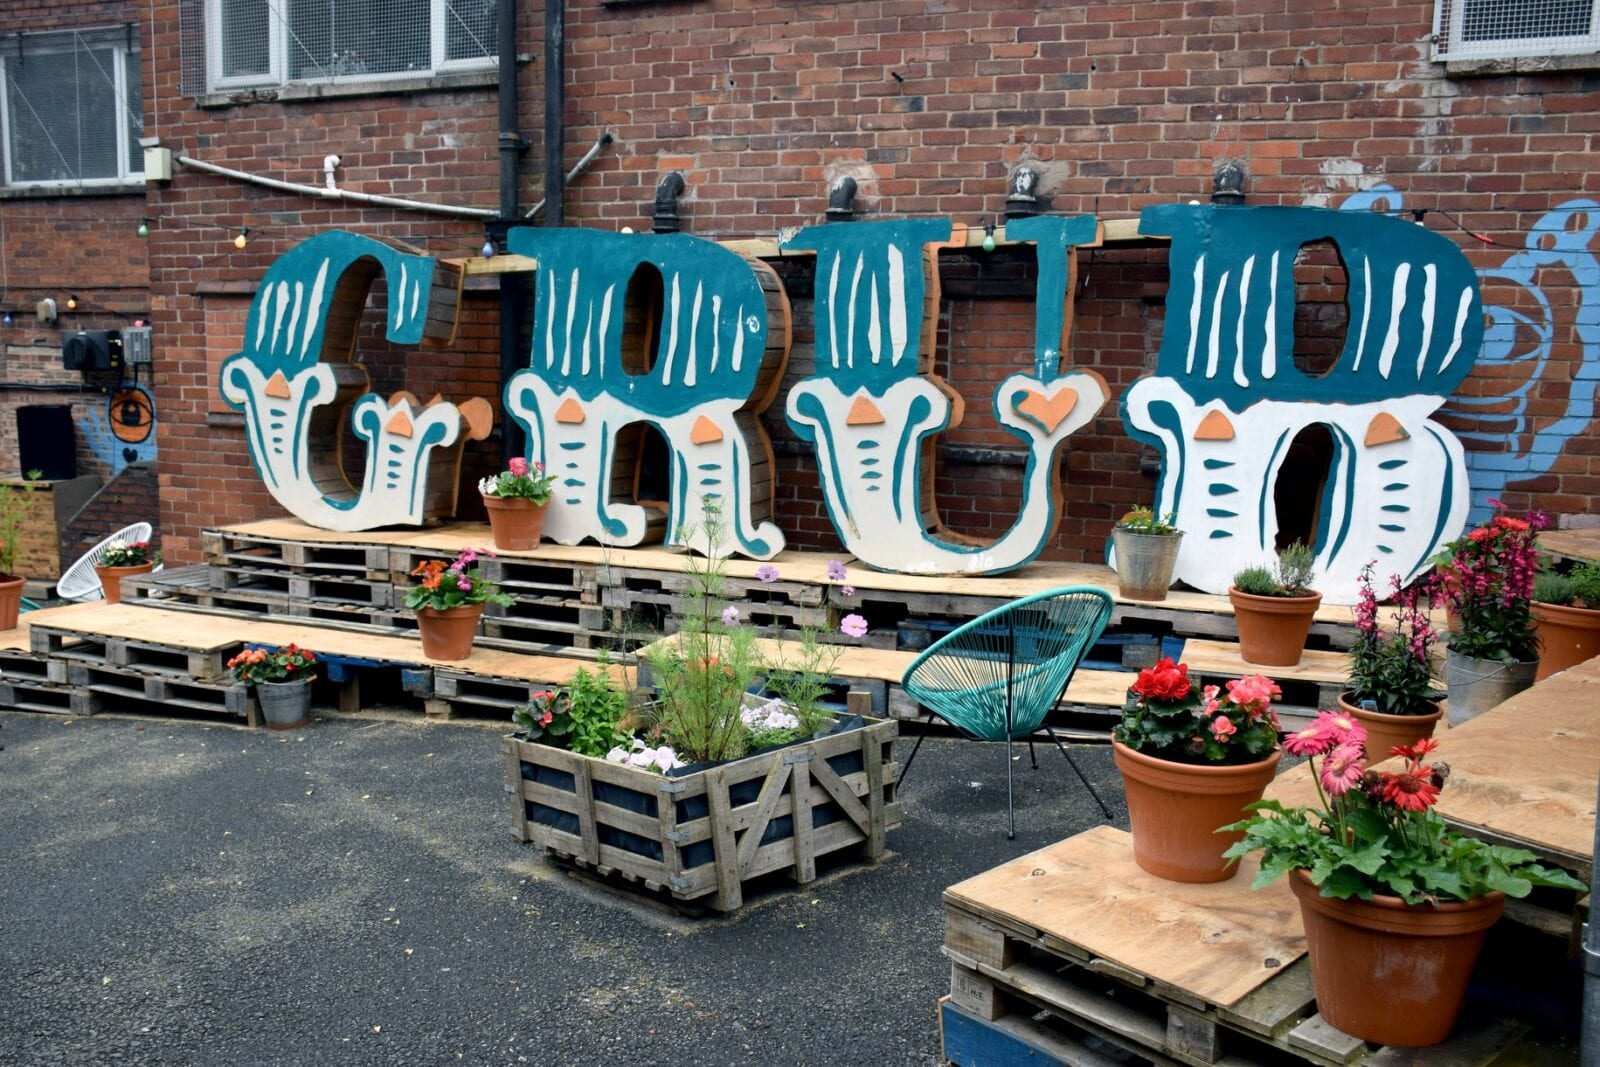 GRUB sets up new 'influencer' policy to help support local community, The Manc